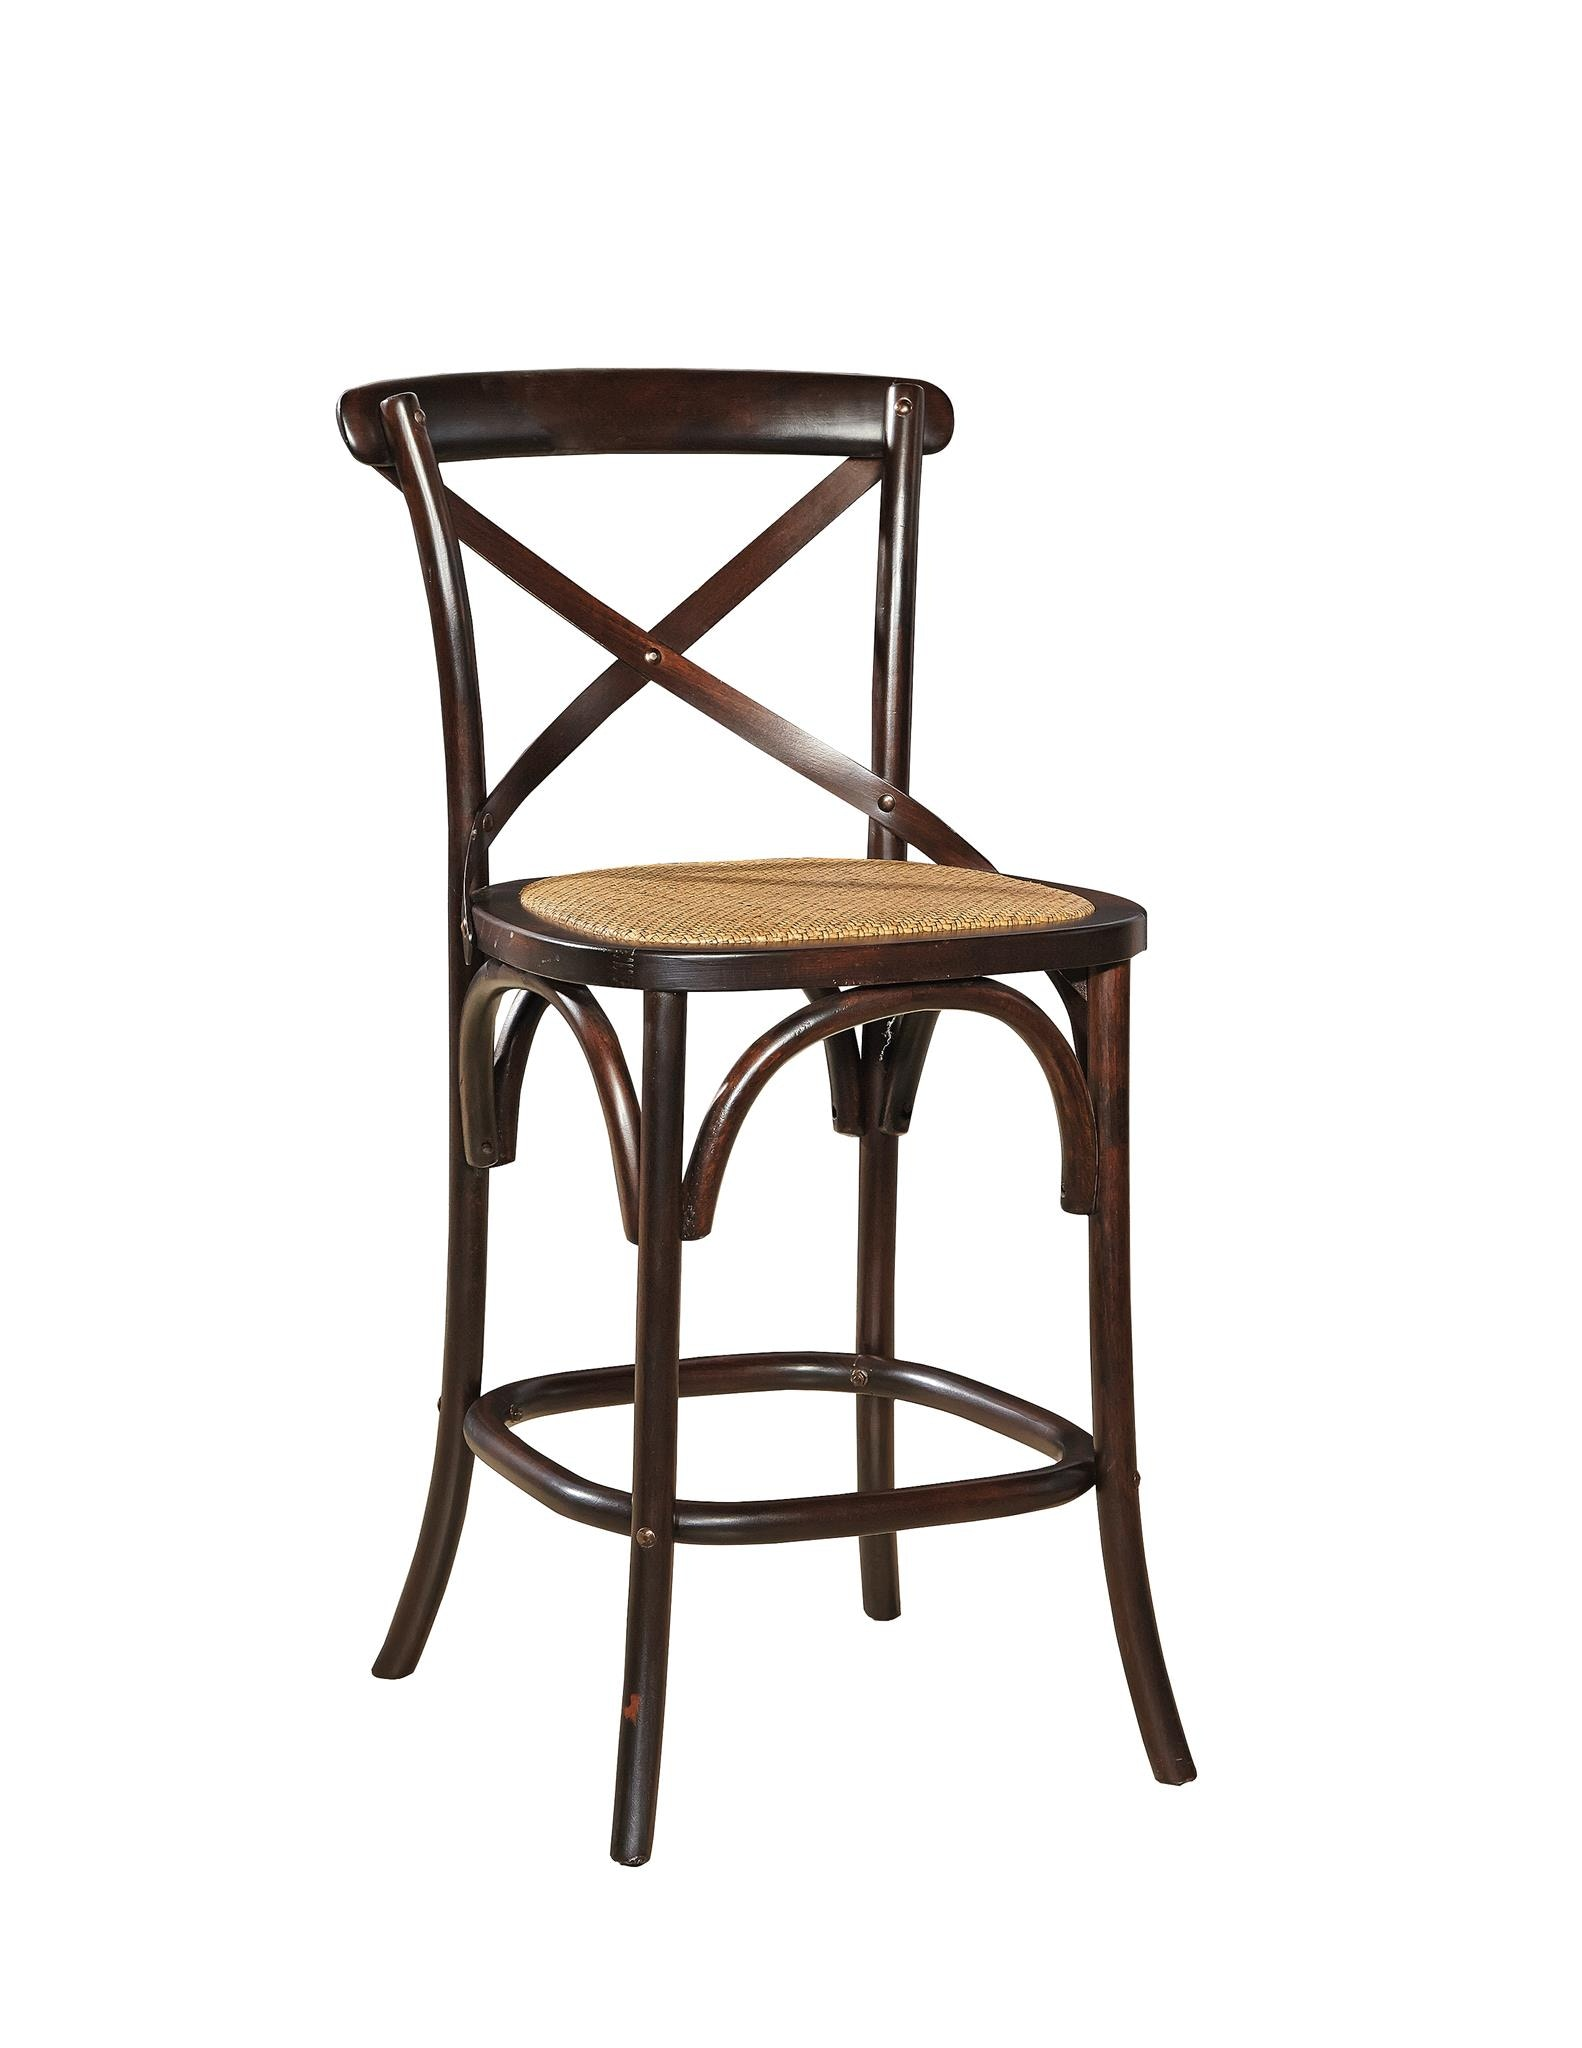 Charmant ... Inspired By Our Bestselling Bentwood Bistro Chairs The Seat Is Padded  With A Woven Rattan Cover. Bentwood Counter Stool 521438 Furniture Classics,  LTD